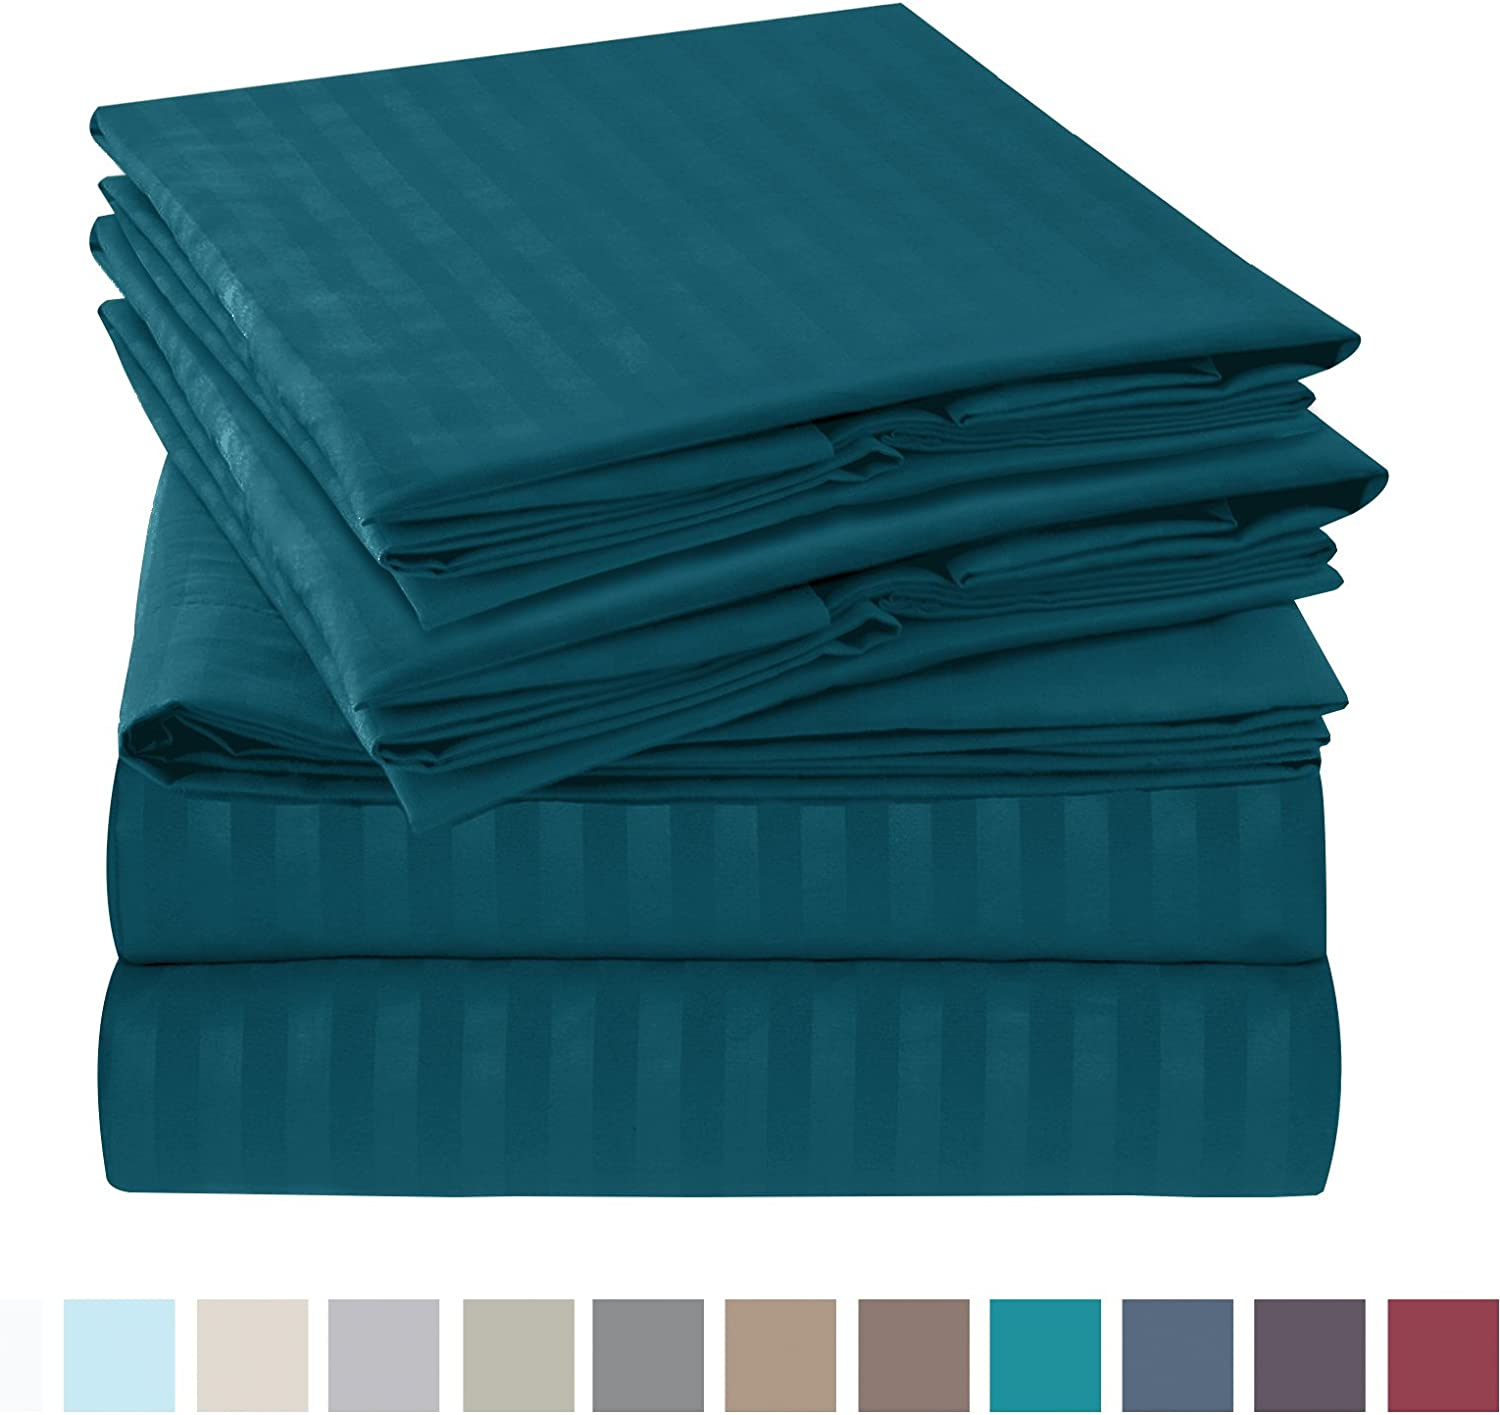 """Nestl Bedding Damask Dobby Stripe 6 Piece Set – 14""""-16"""" Deep Pocket Fitted Sheet – Ultra Soft Double Brushed Microfiber Top Sheet – 4 Hypoallergenic Wrinkle Free Cooling Pillow Cases, King - Teal"""